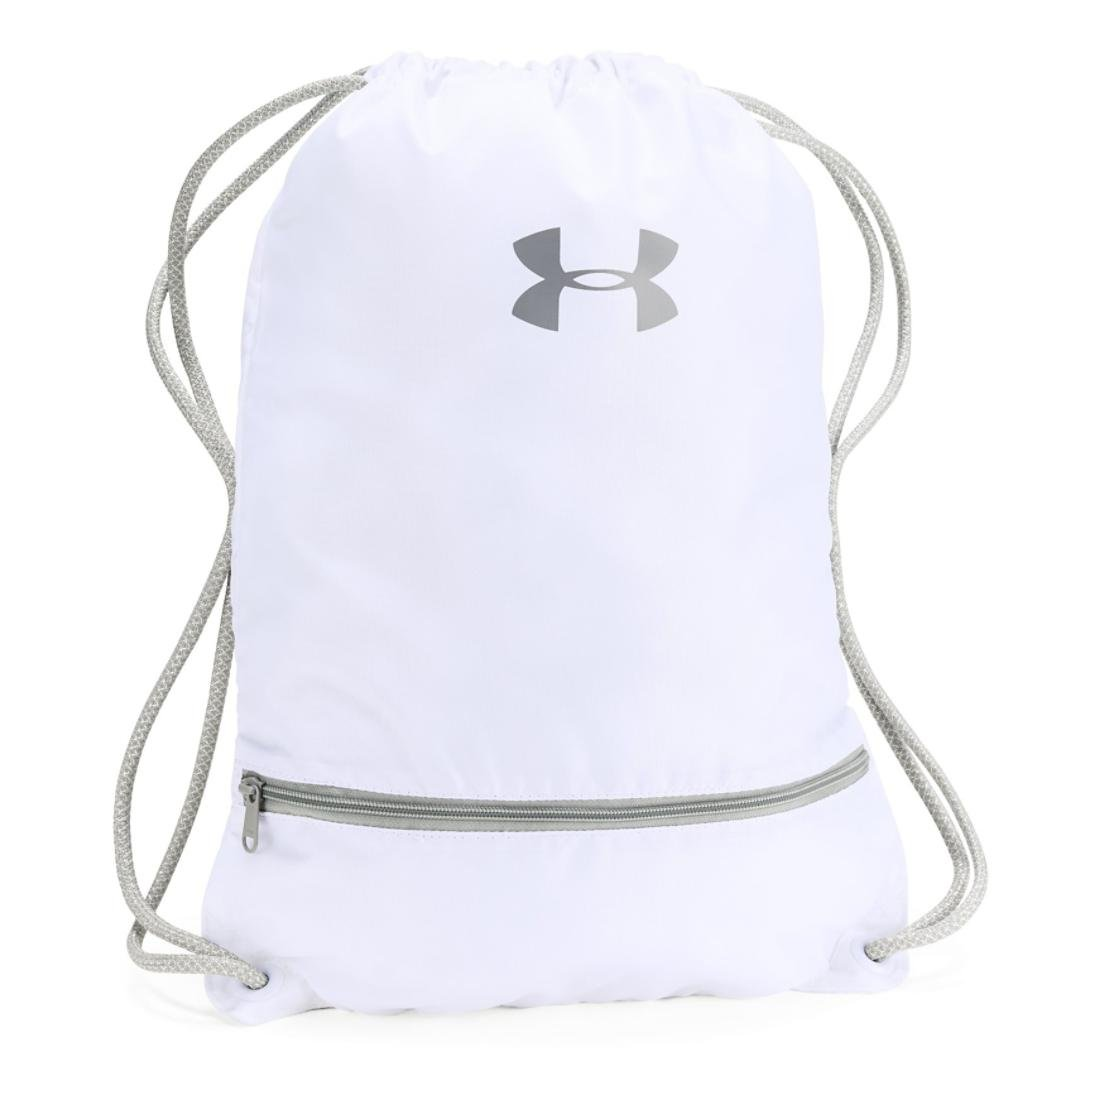 Under Armour Team Sackpack (White/Silver/Steel)